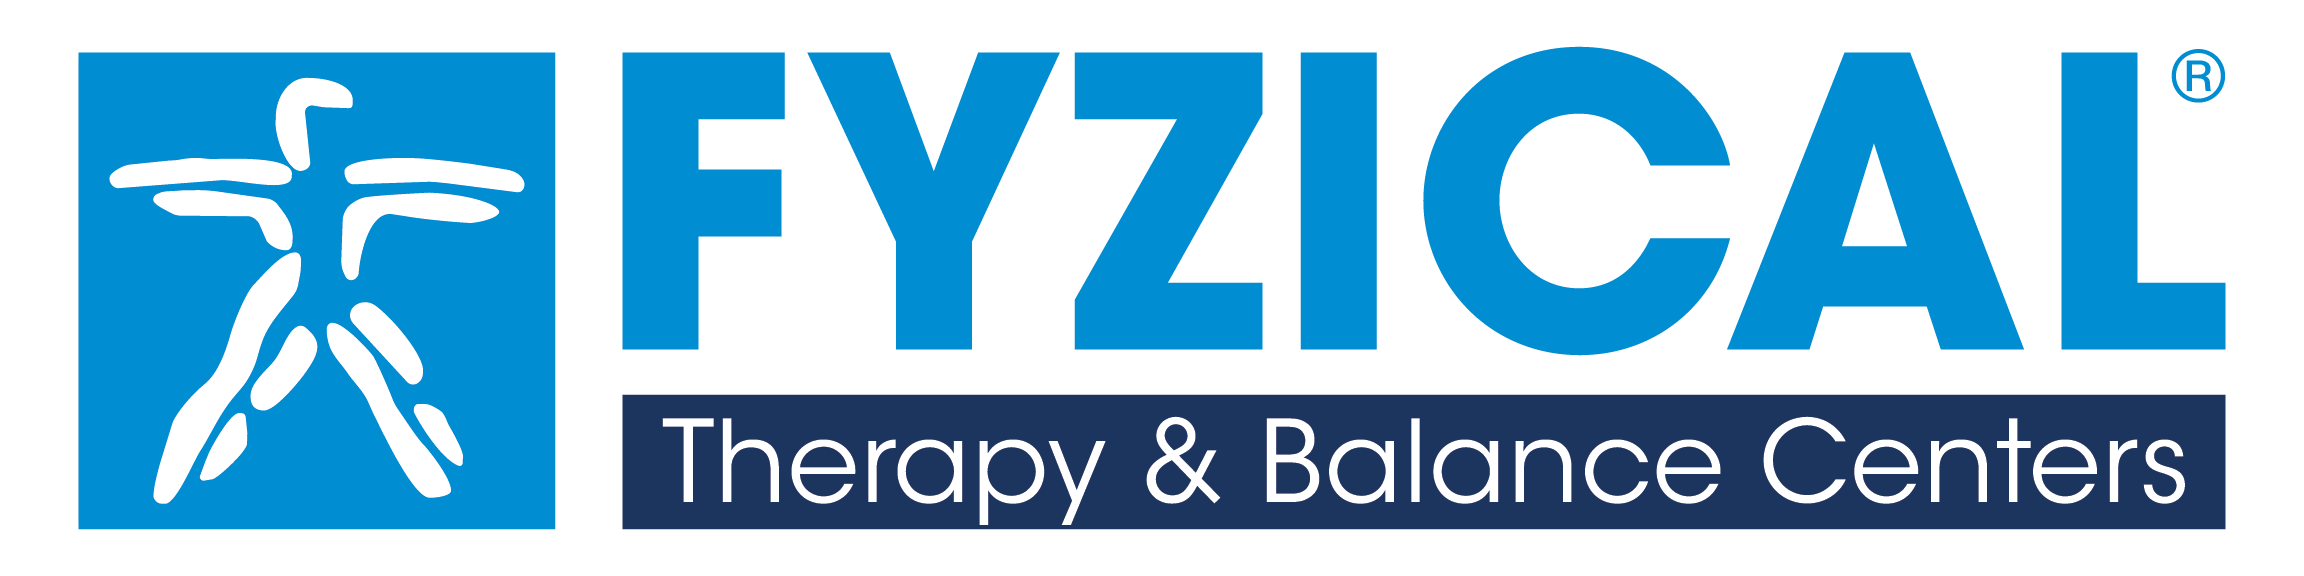 FYZICAL Therapy & Wellness Centers of Rockville